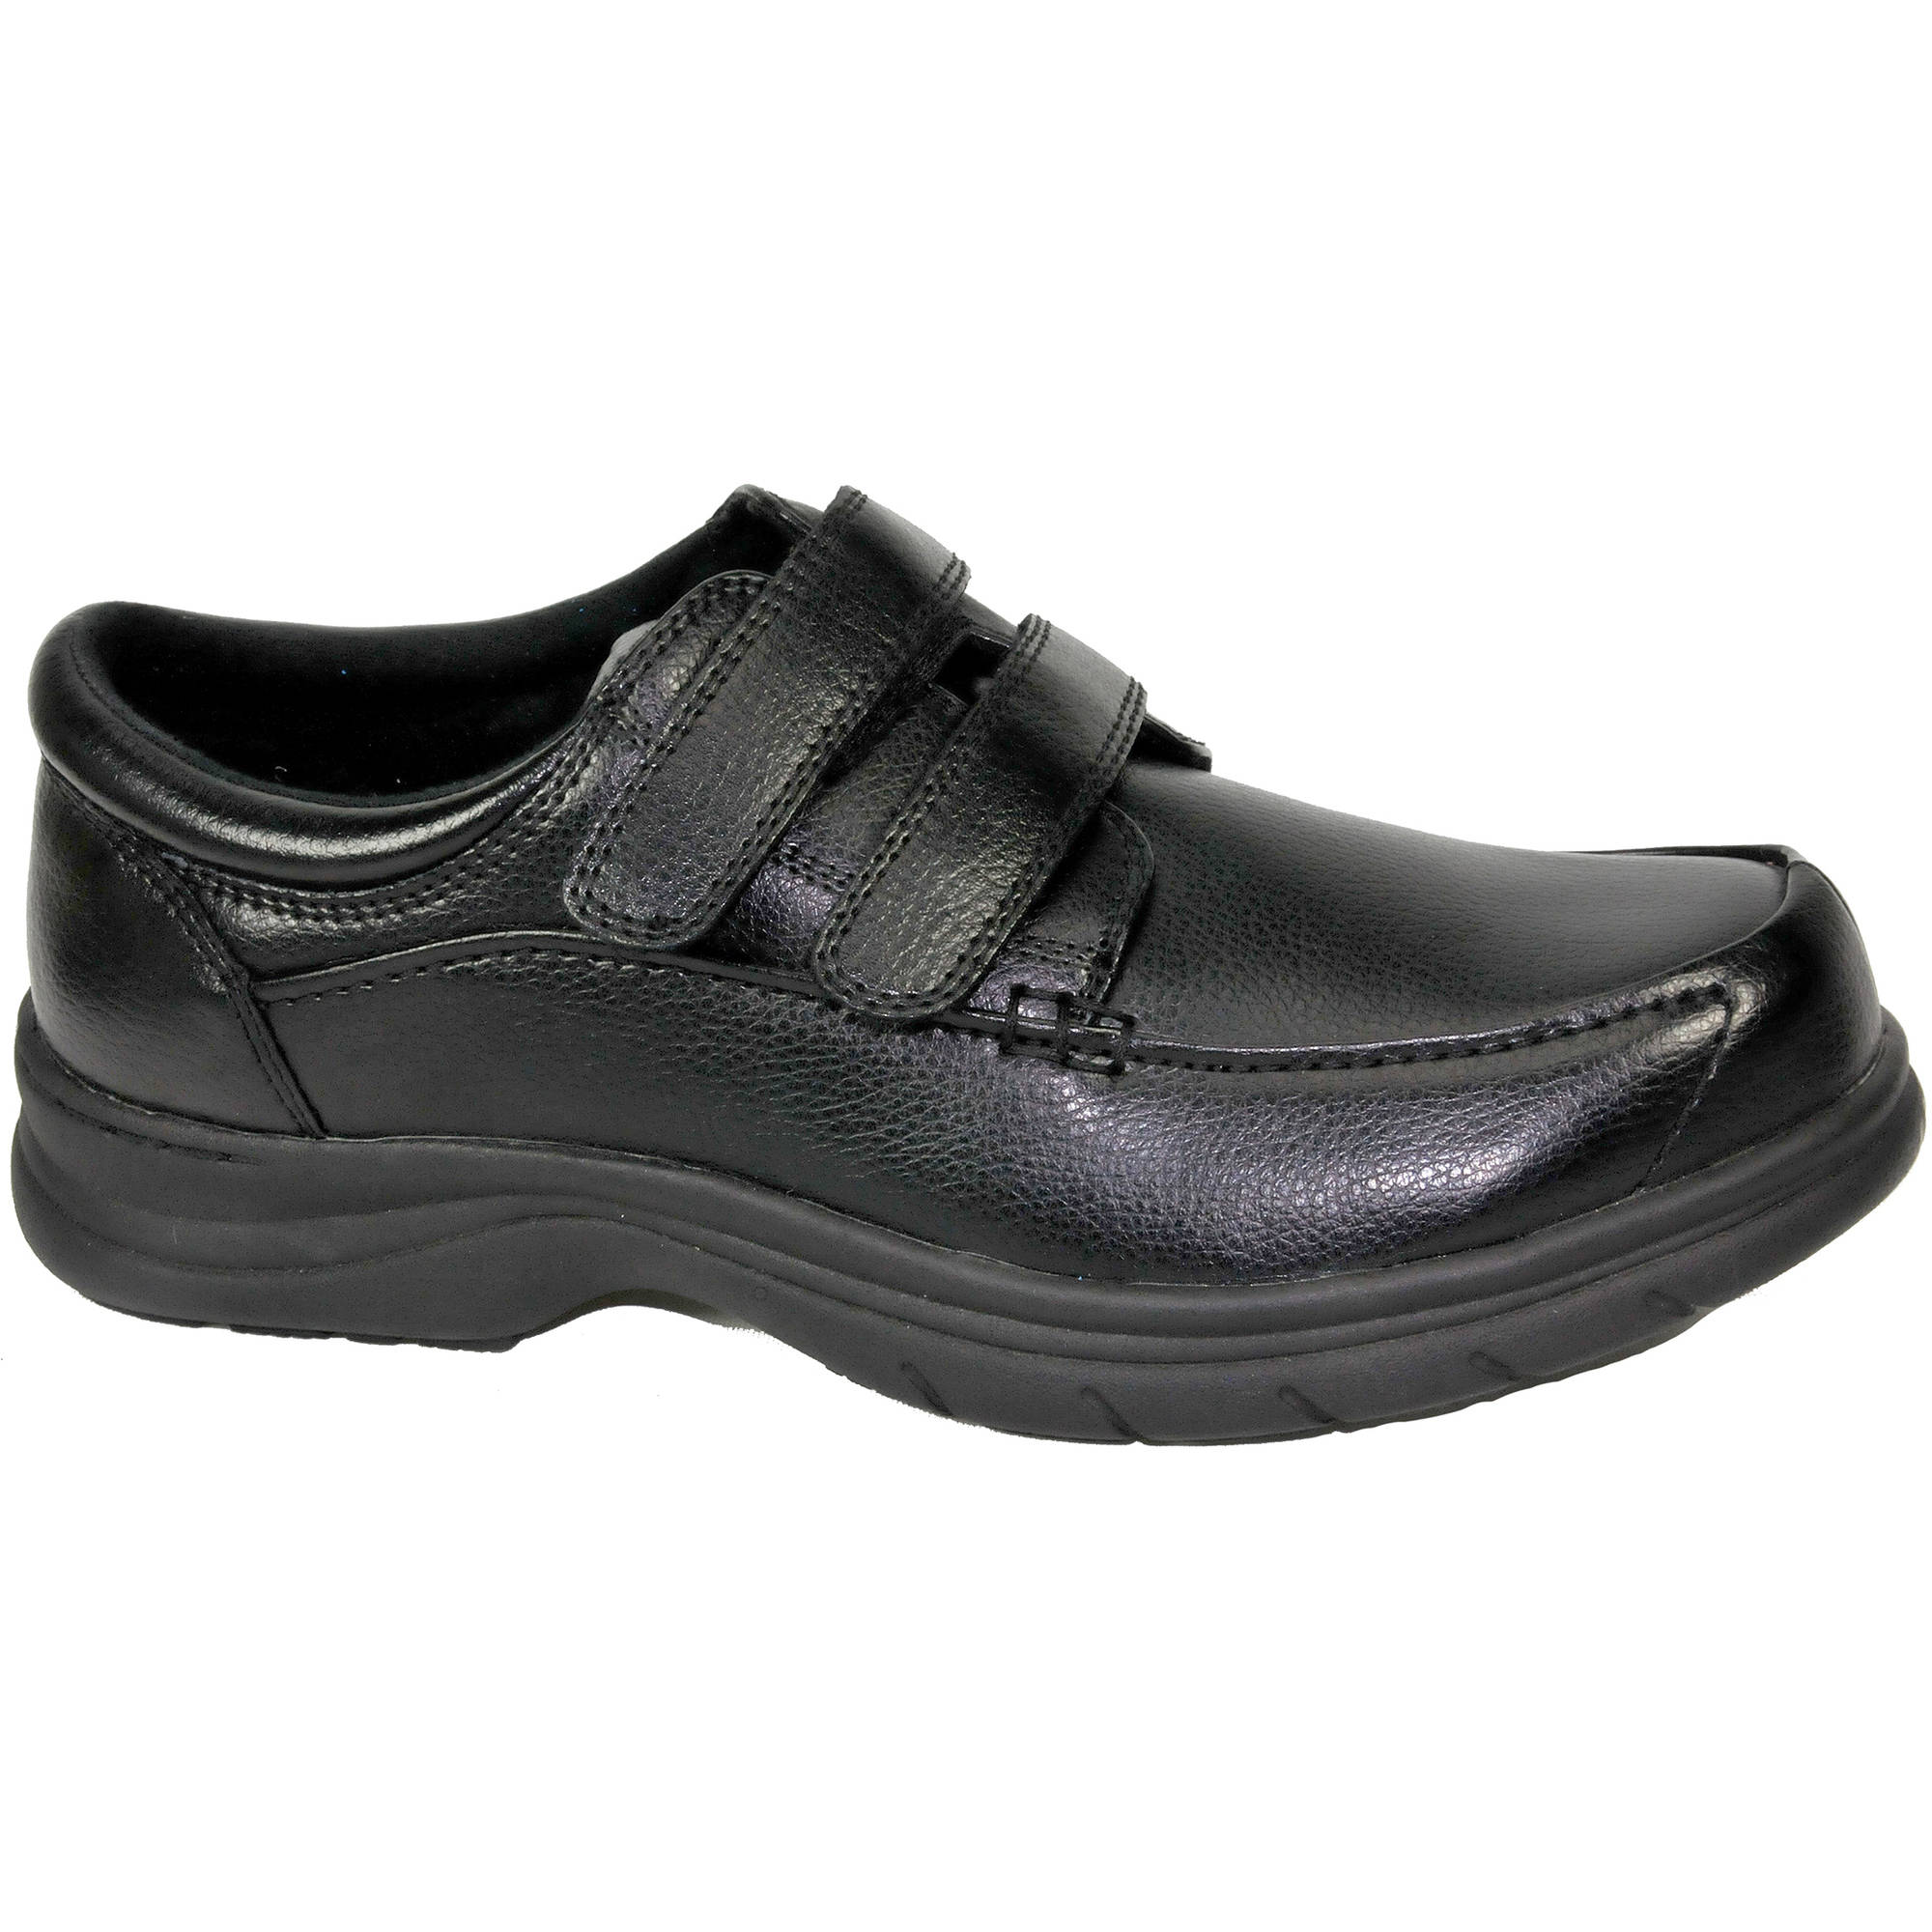 Dr. Scholl's Men's Michael Shoe